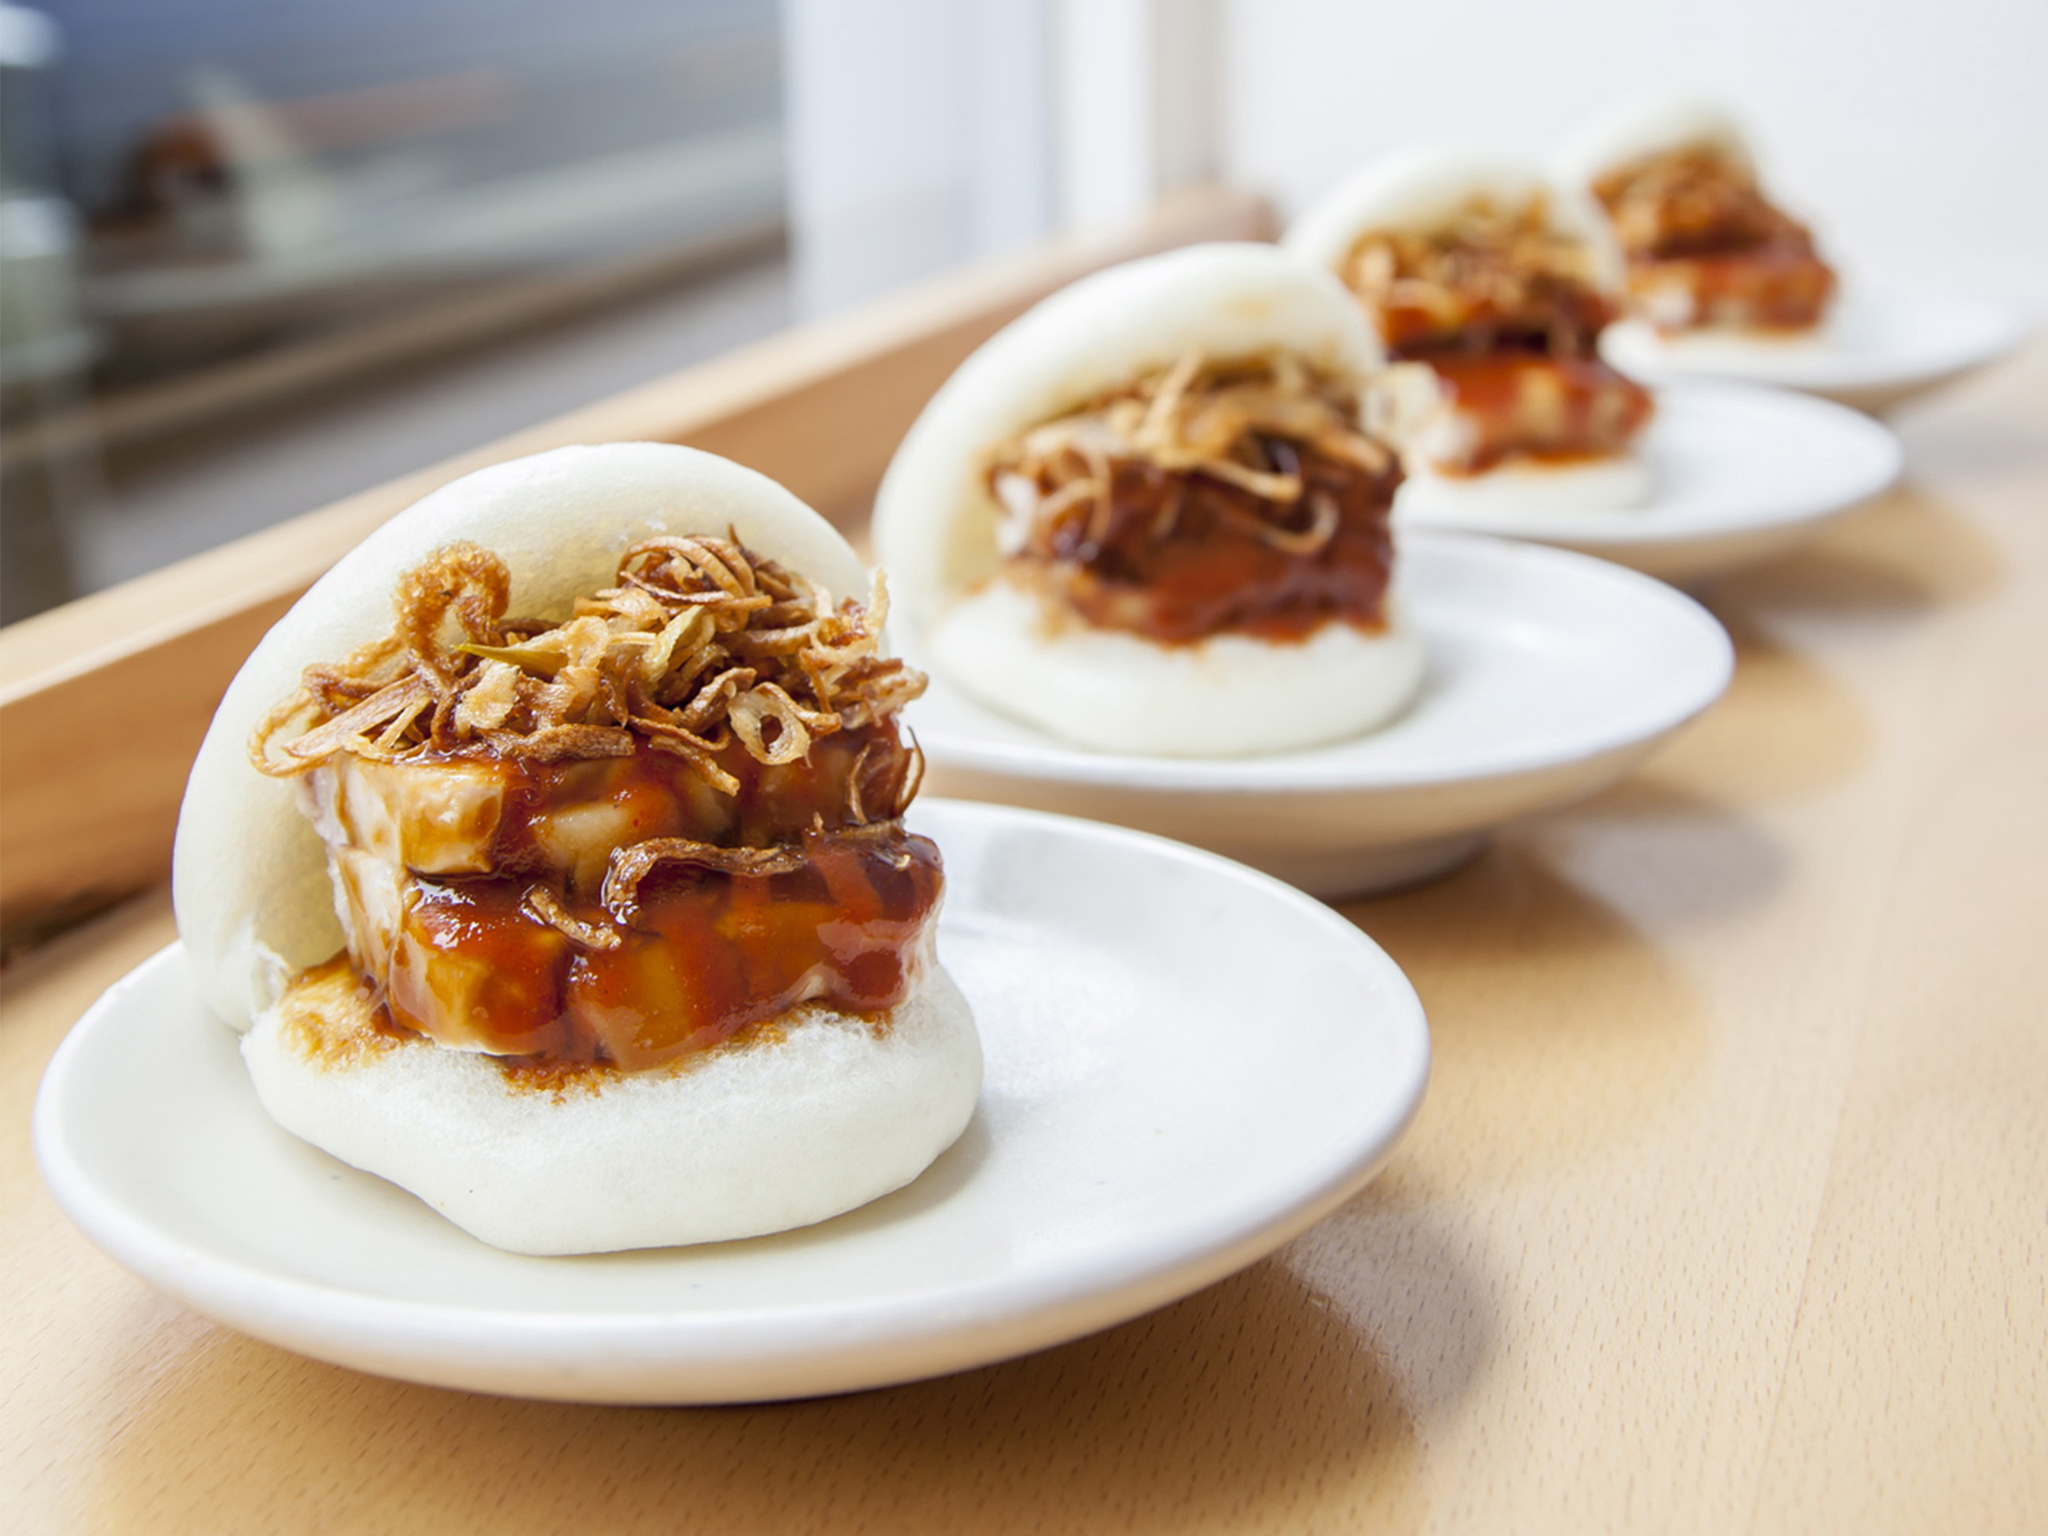 How to get a table at Bao Soho